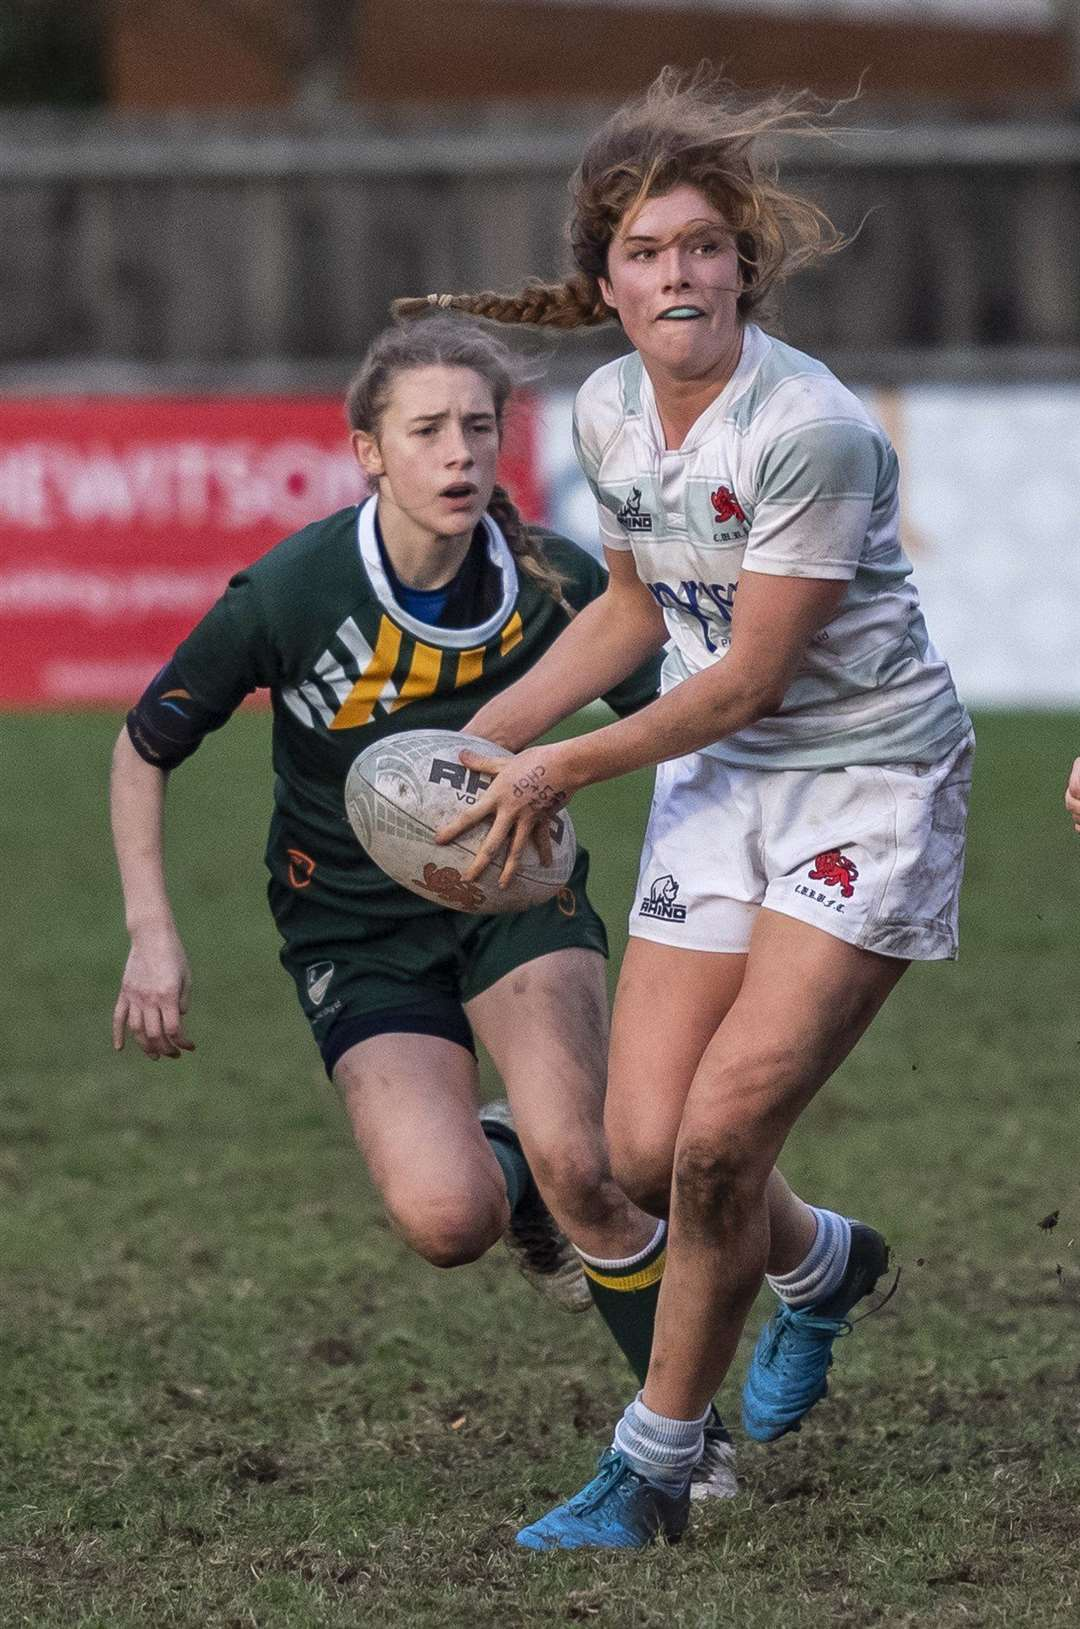 Fiona Shuttleworth has been elected women's captain of Cambridge University Rugby Union Football Club